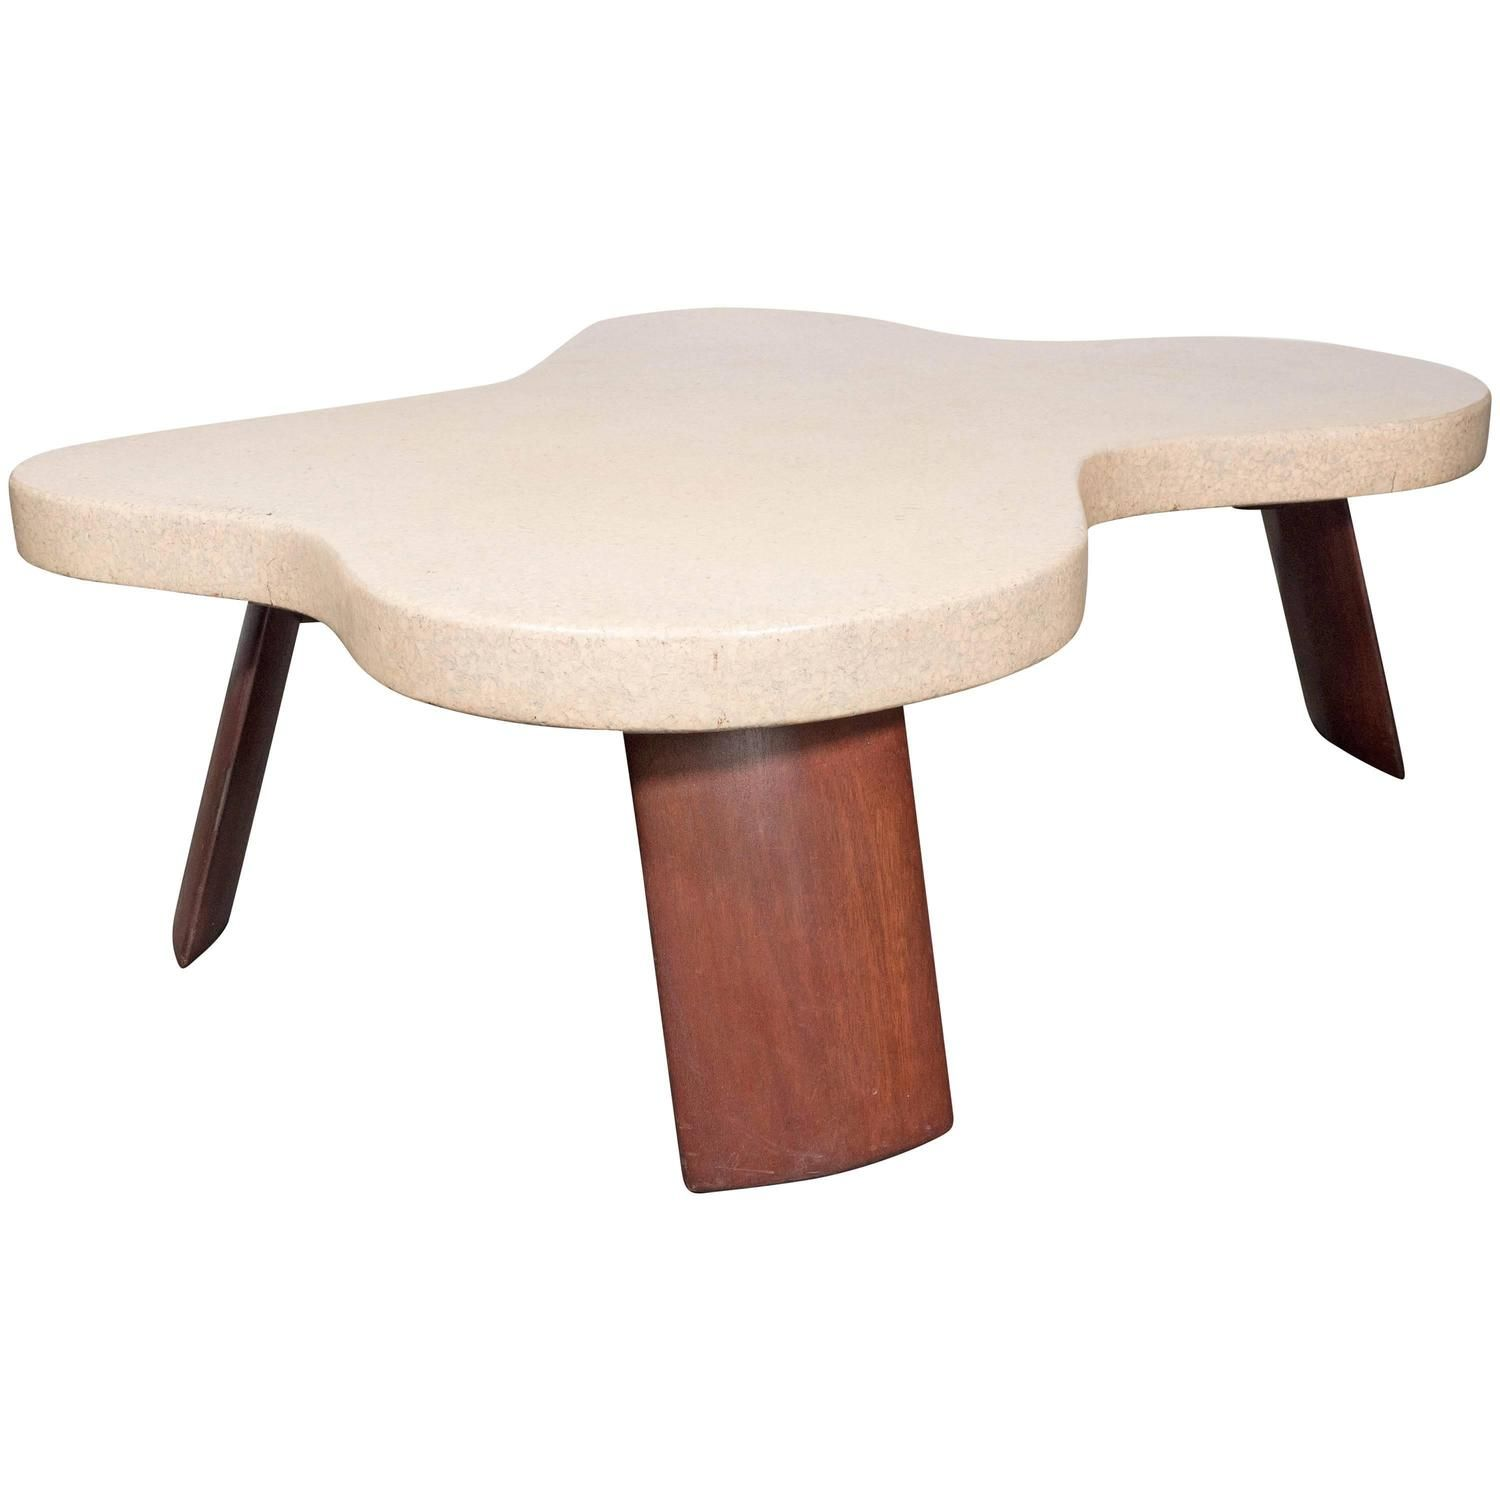 "Best Discount Furniture Websites: Iconic Mid-Century Modernist ""Amoeba"" Cork-Top Cocktail"